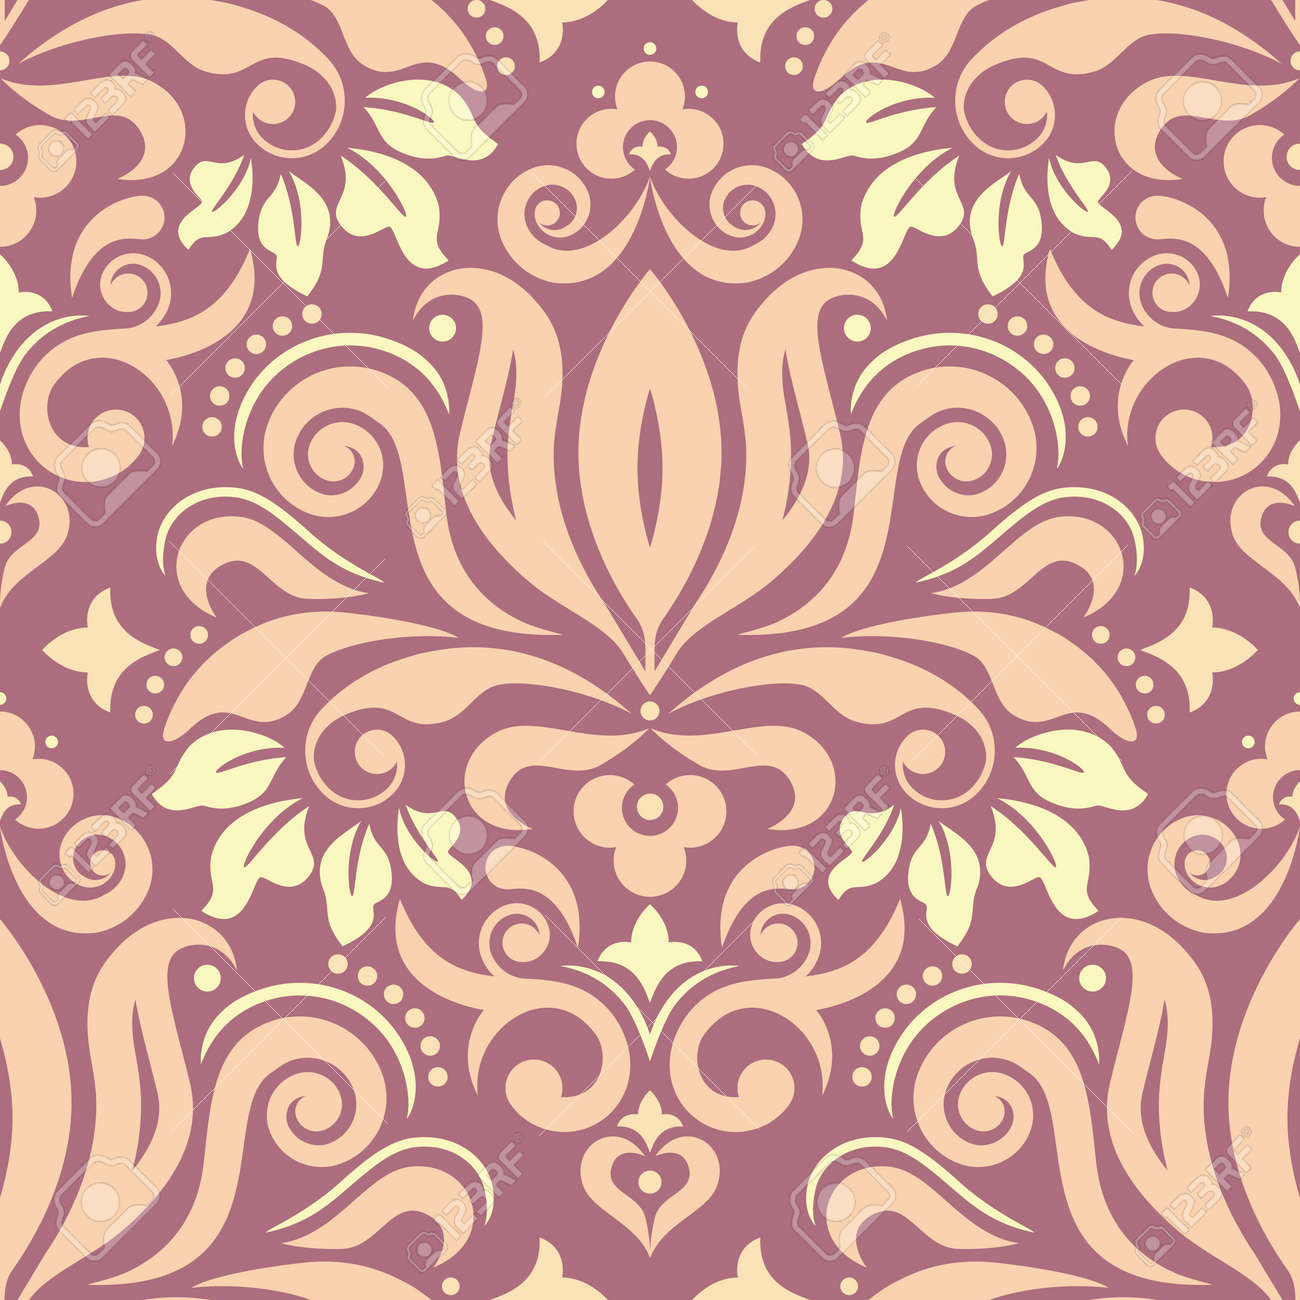 Royal Damask wallpaper of fabric print pattern, retro textile vector design with flowers, leaves and swirls - 168070548